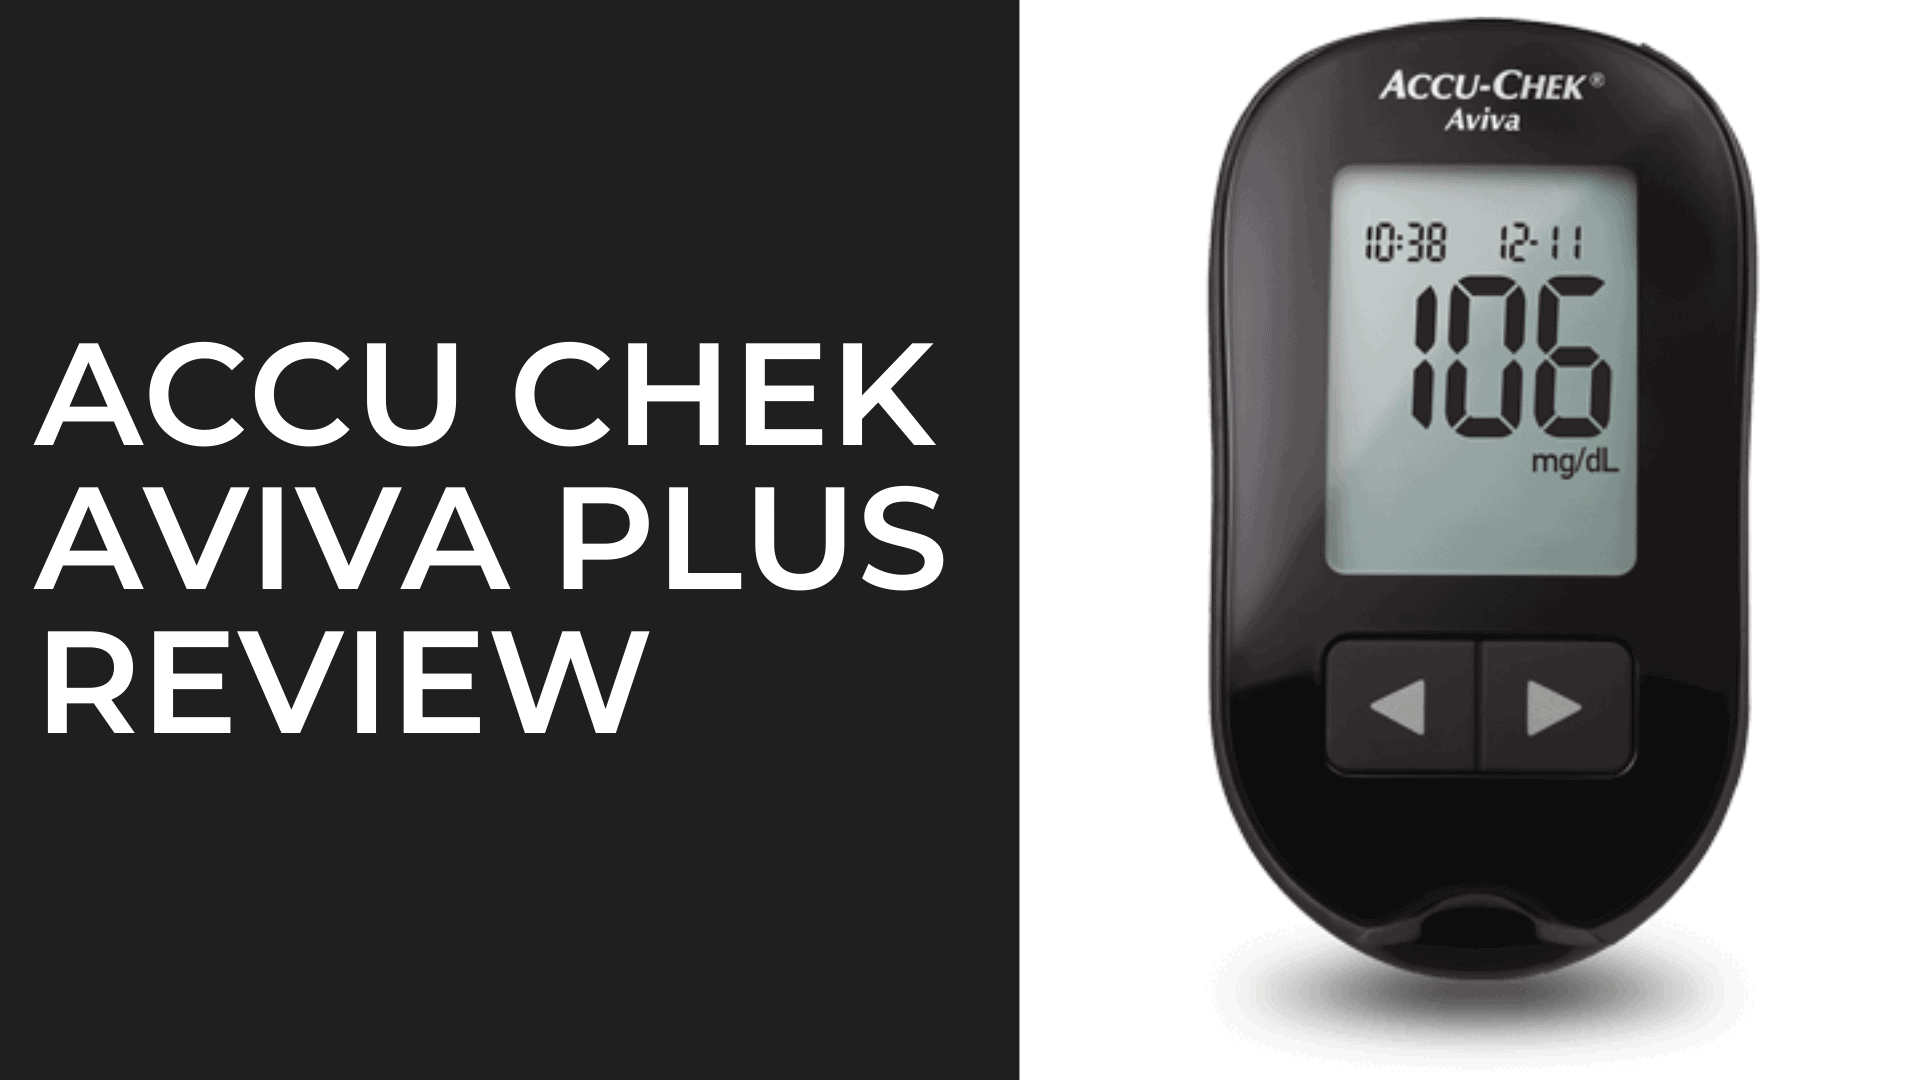 Accu Chek Aviva Plus Review